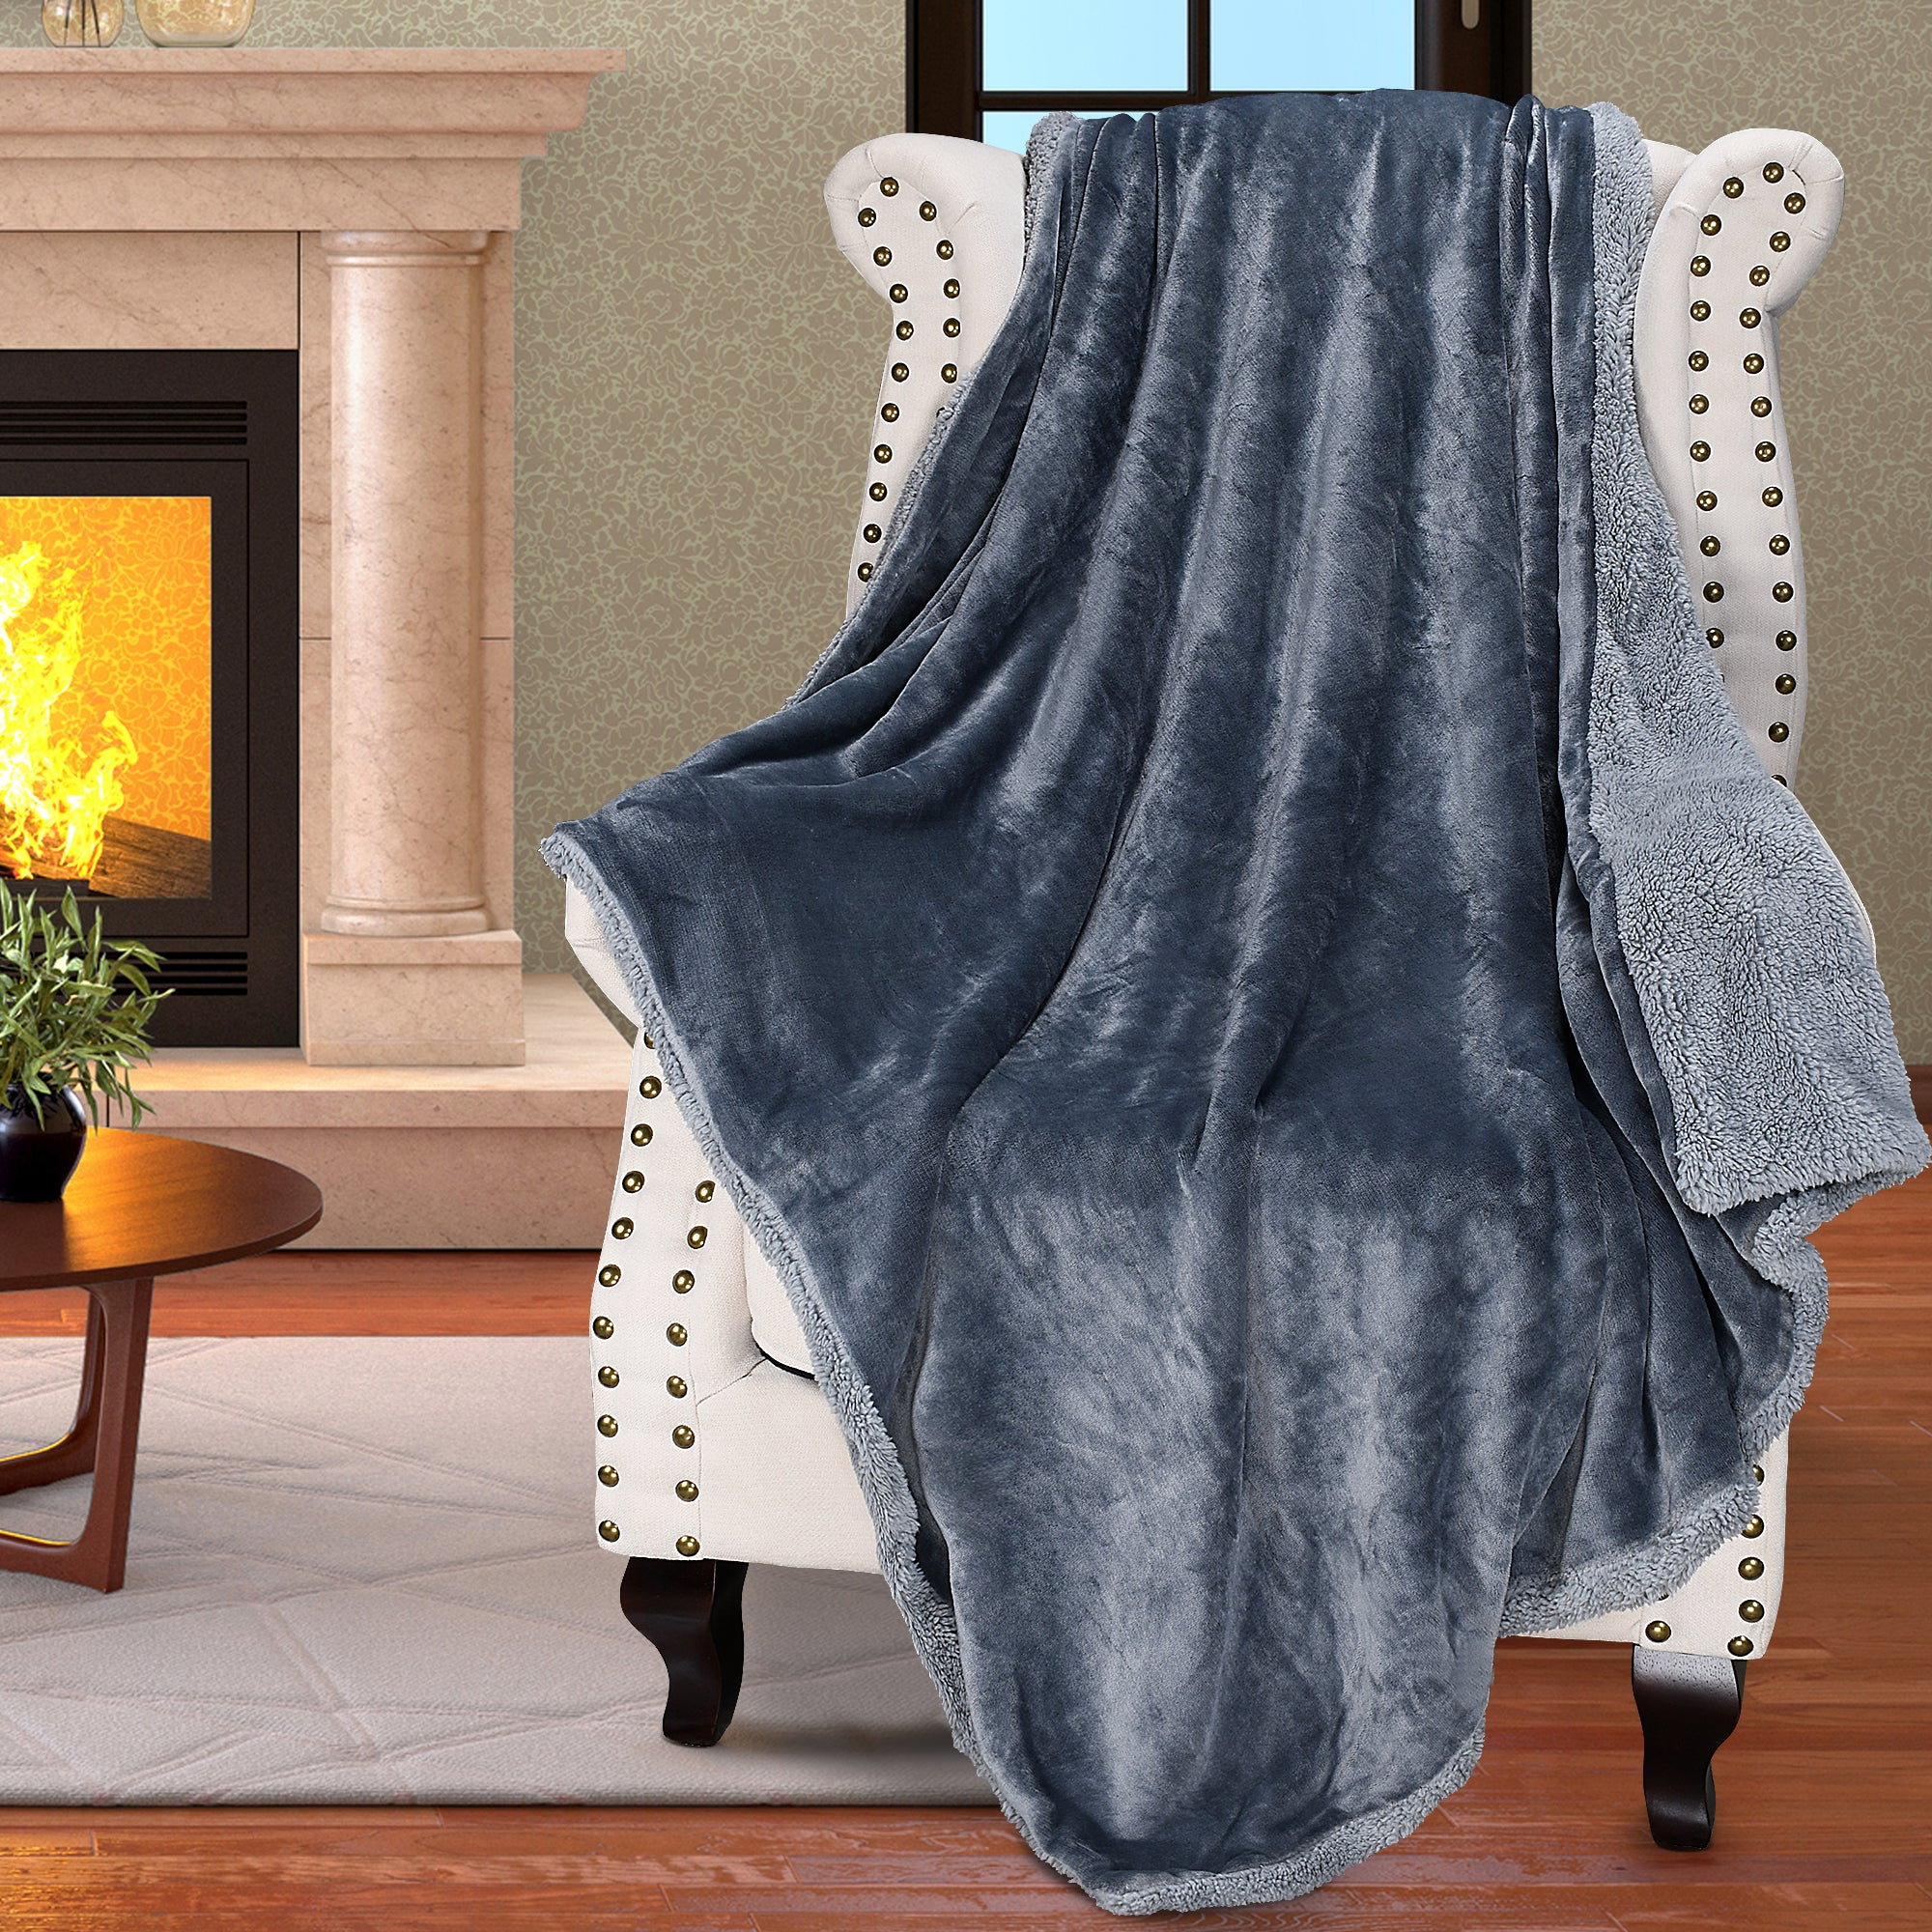 Throw Blanket with Reversible Match Color Fuzzy Micro Plush Sherpa